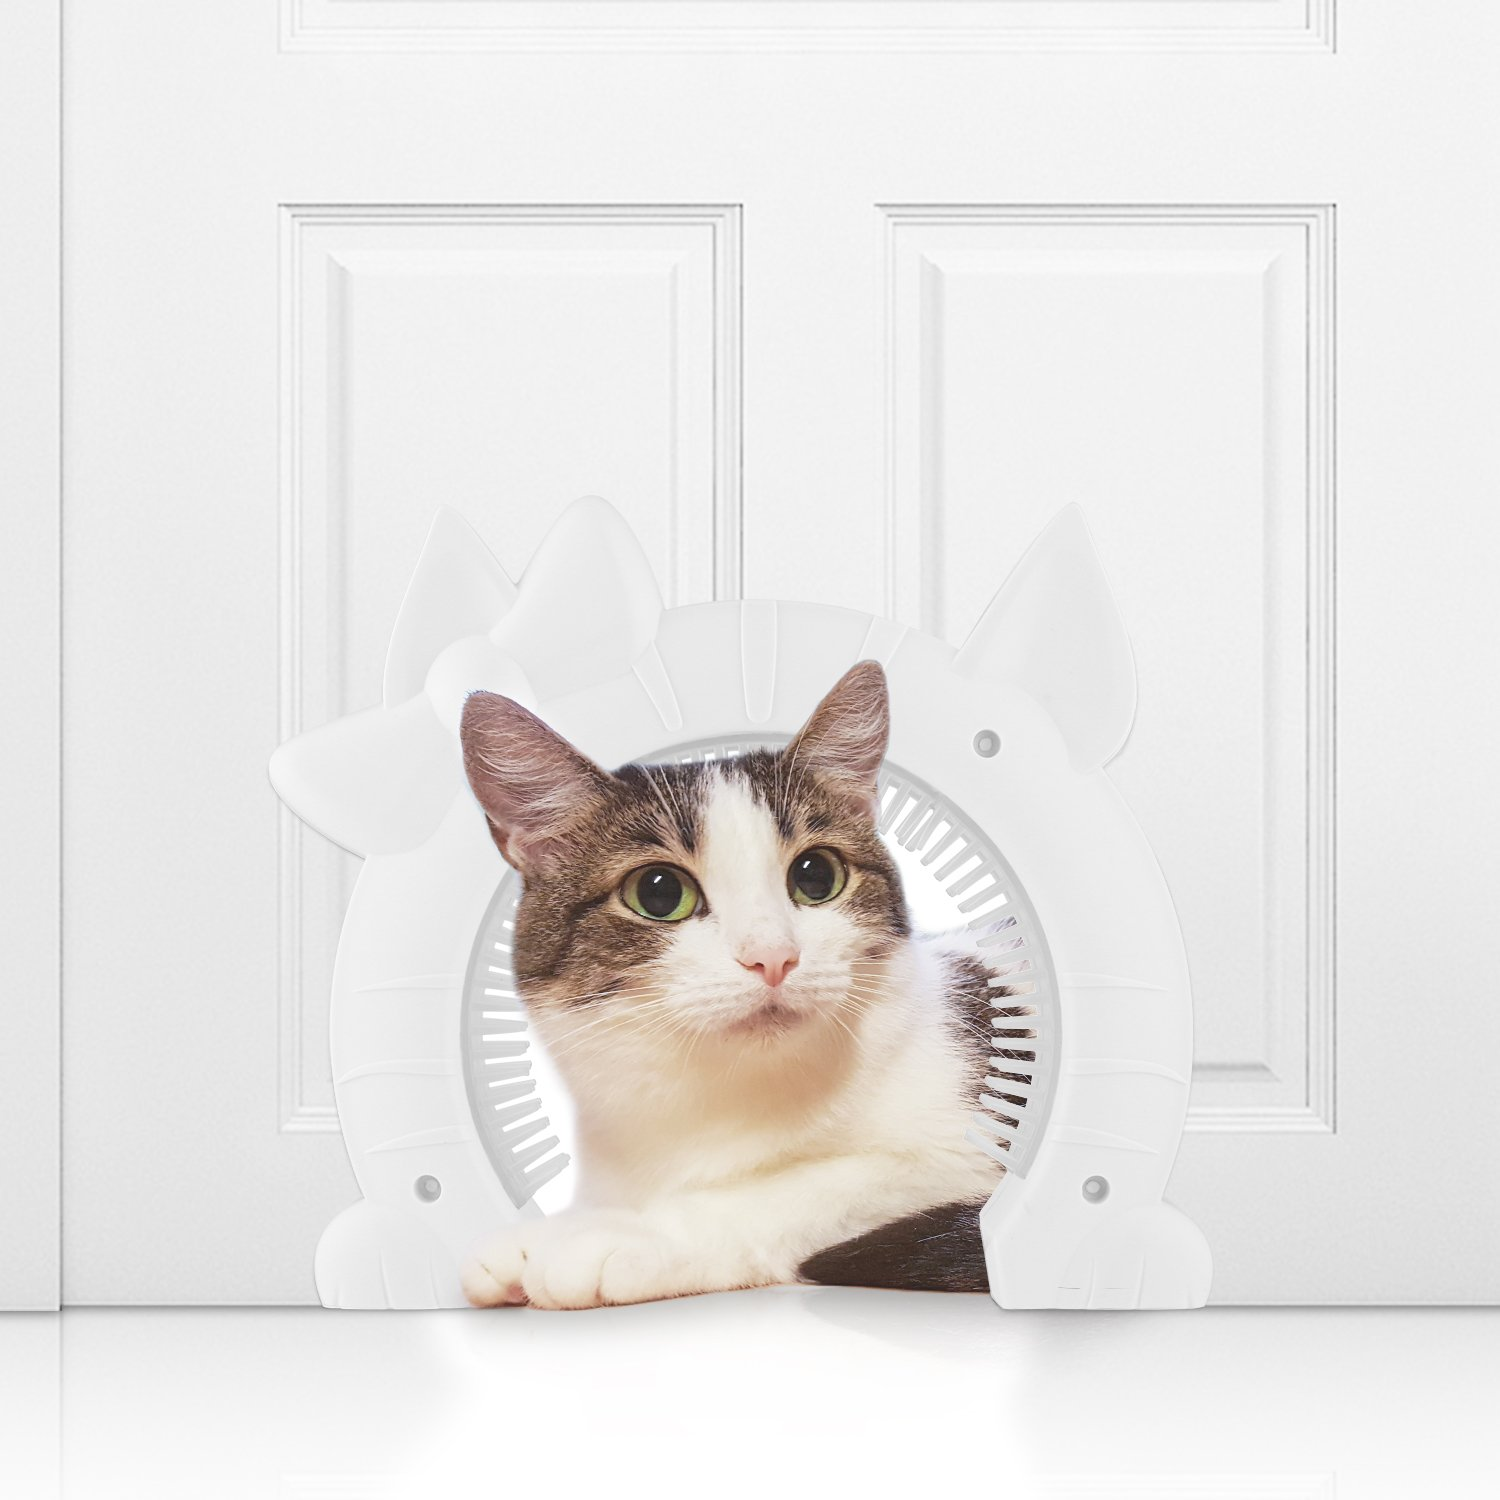 Homdox Interior Cat Door Clip-on Removable Cleaning/Grooming Brush, Kitty Shaped Cat Hole Pass Hidden Litter Box Pet Door Cats Medium & Large Size - White